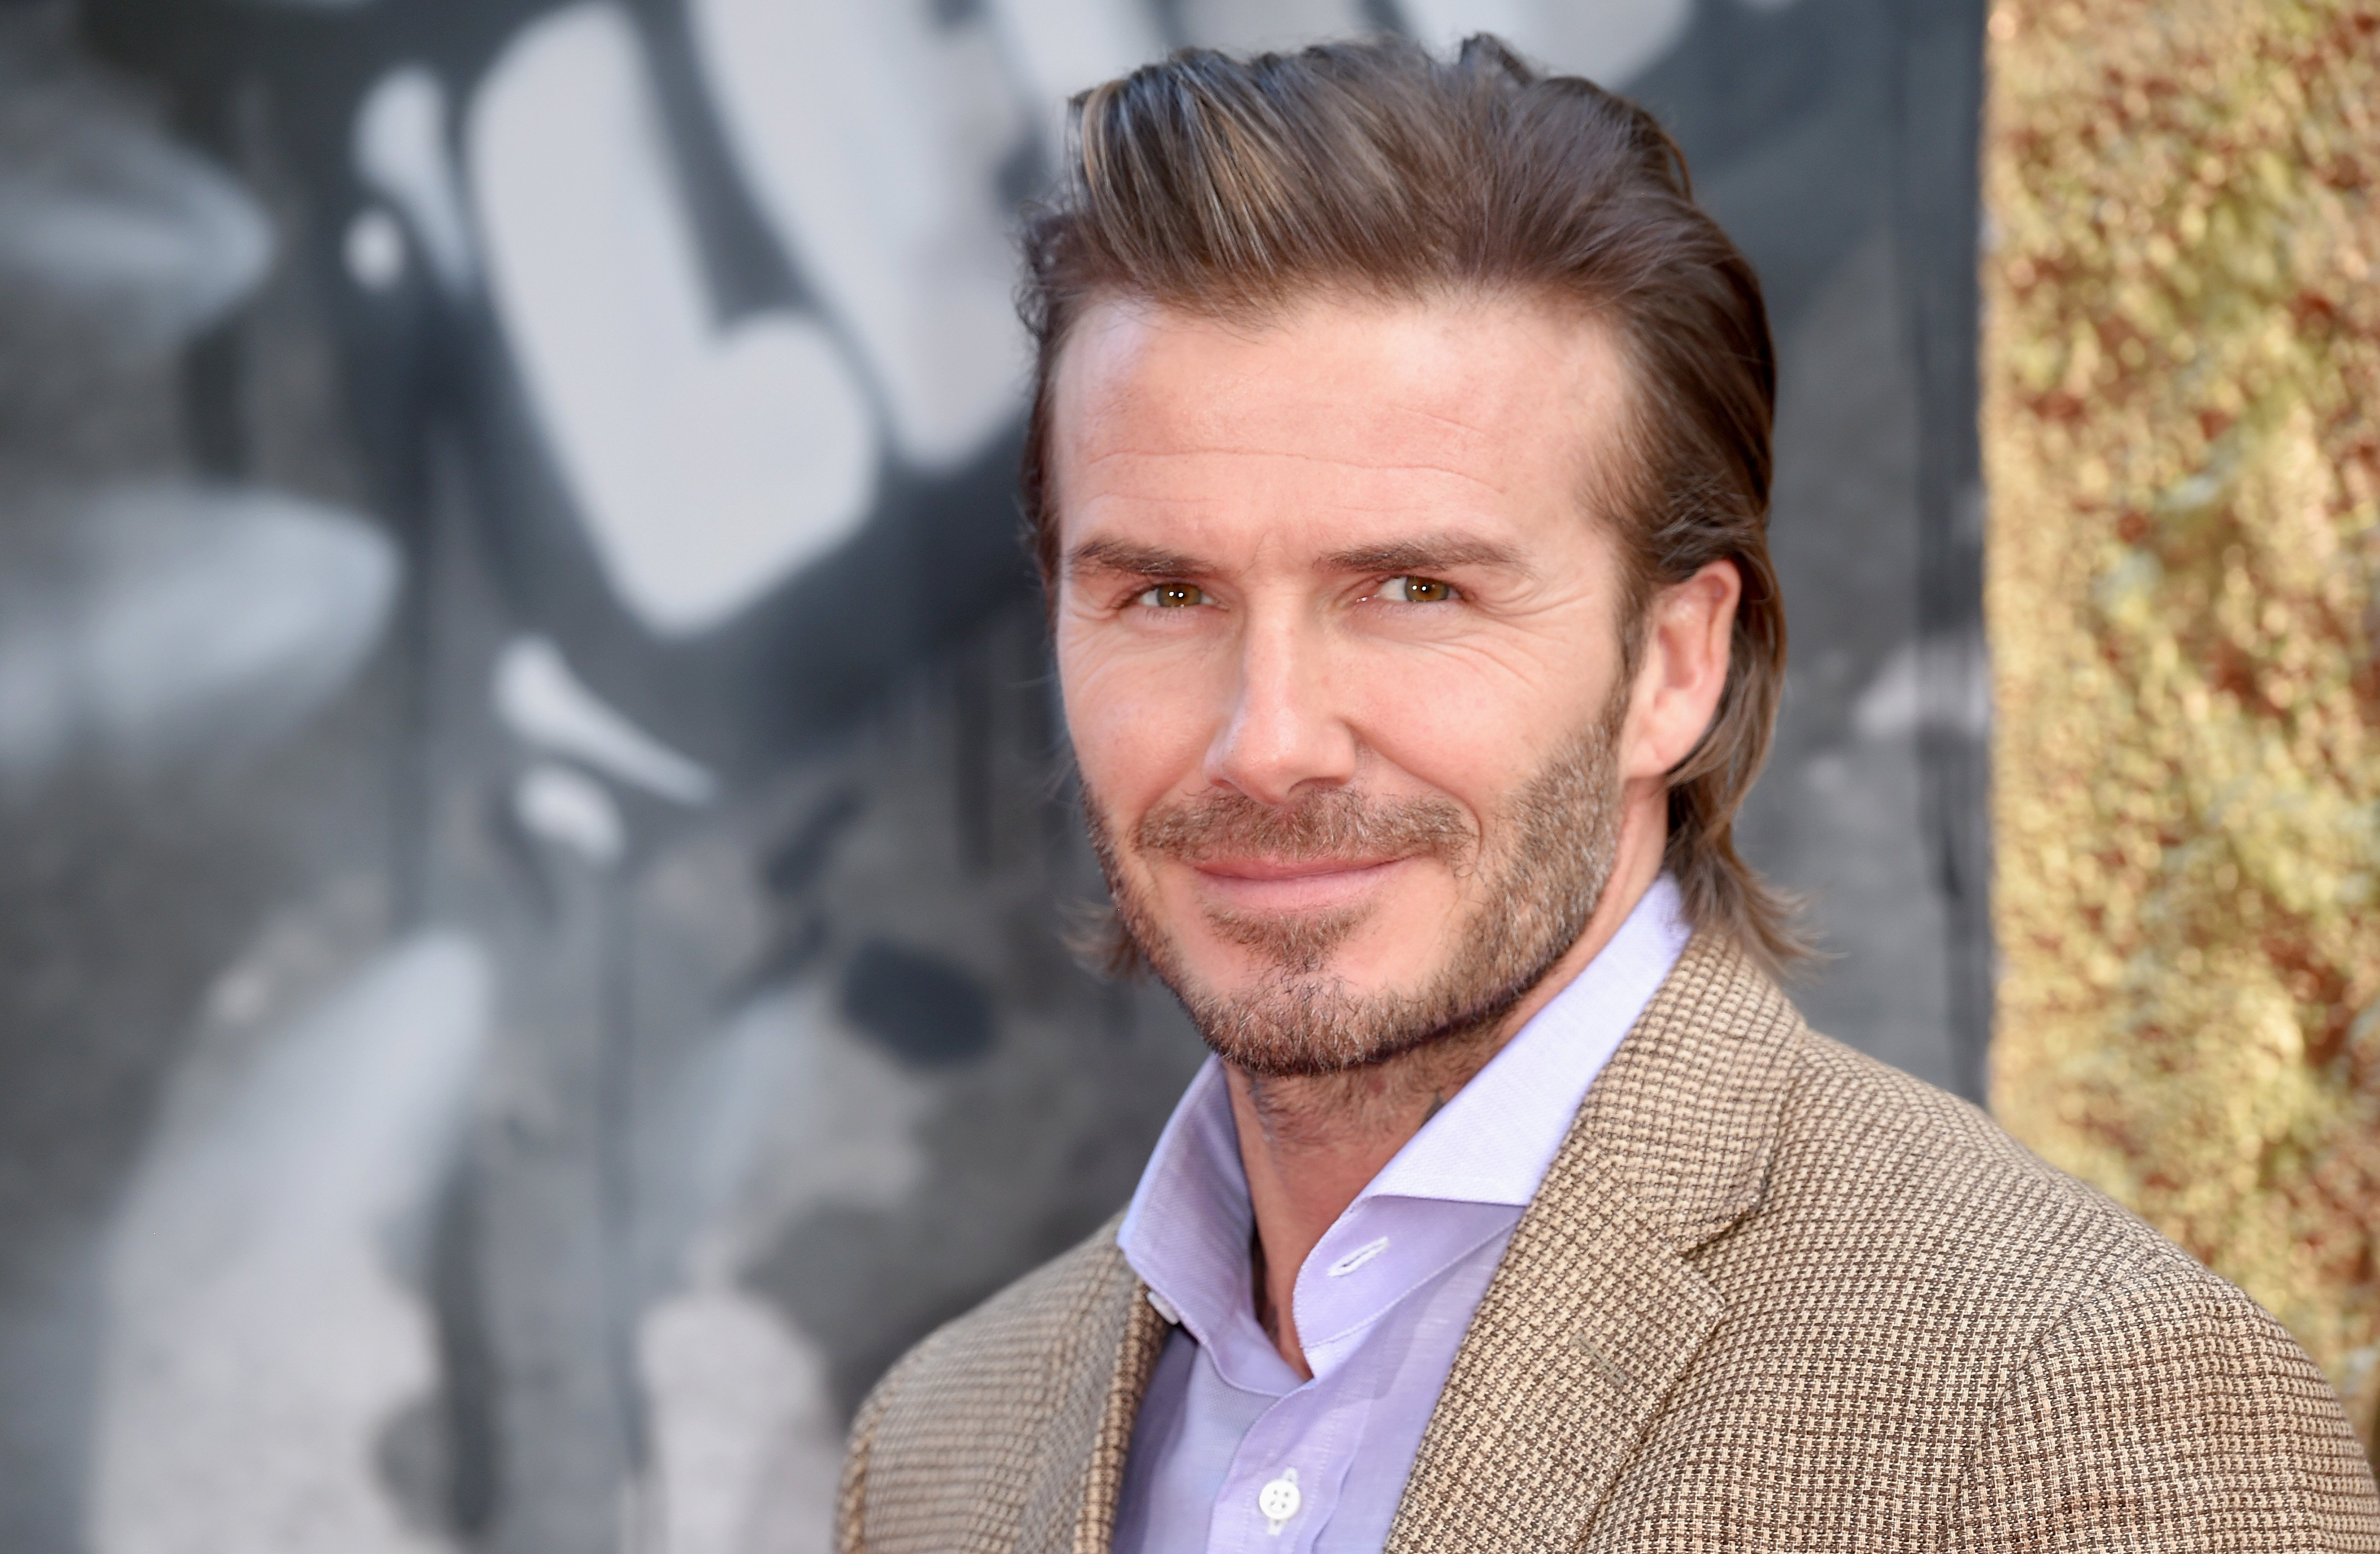 """David Beckham attends the """"King Arthur: Legend of the Sword"""" European premiere on May 10, 2017, in London, United Kingdom.   Source: Getty Images."""